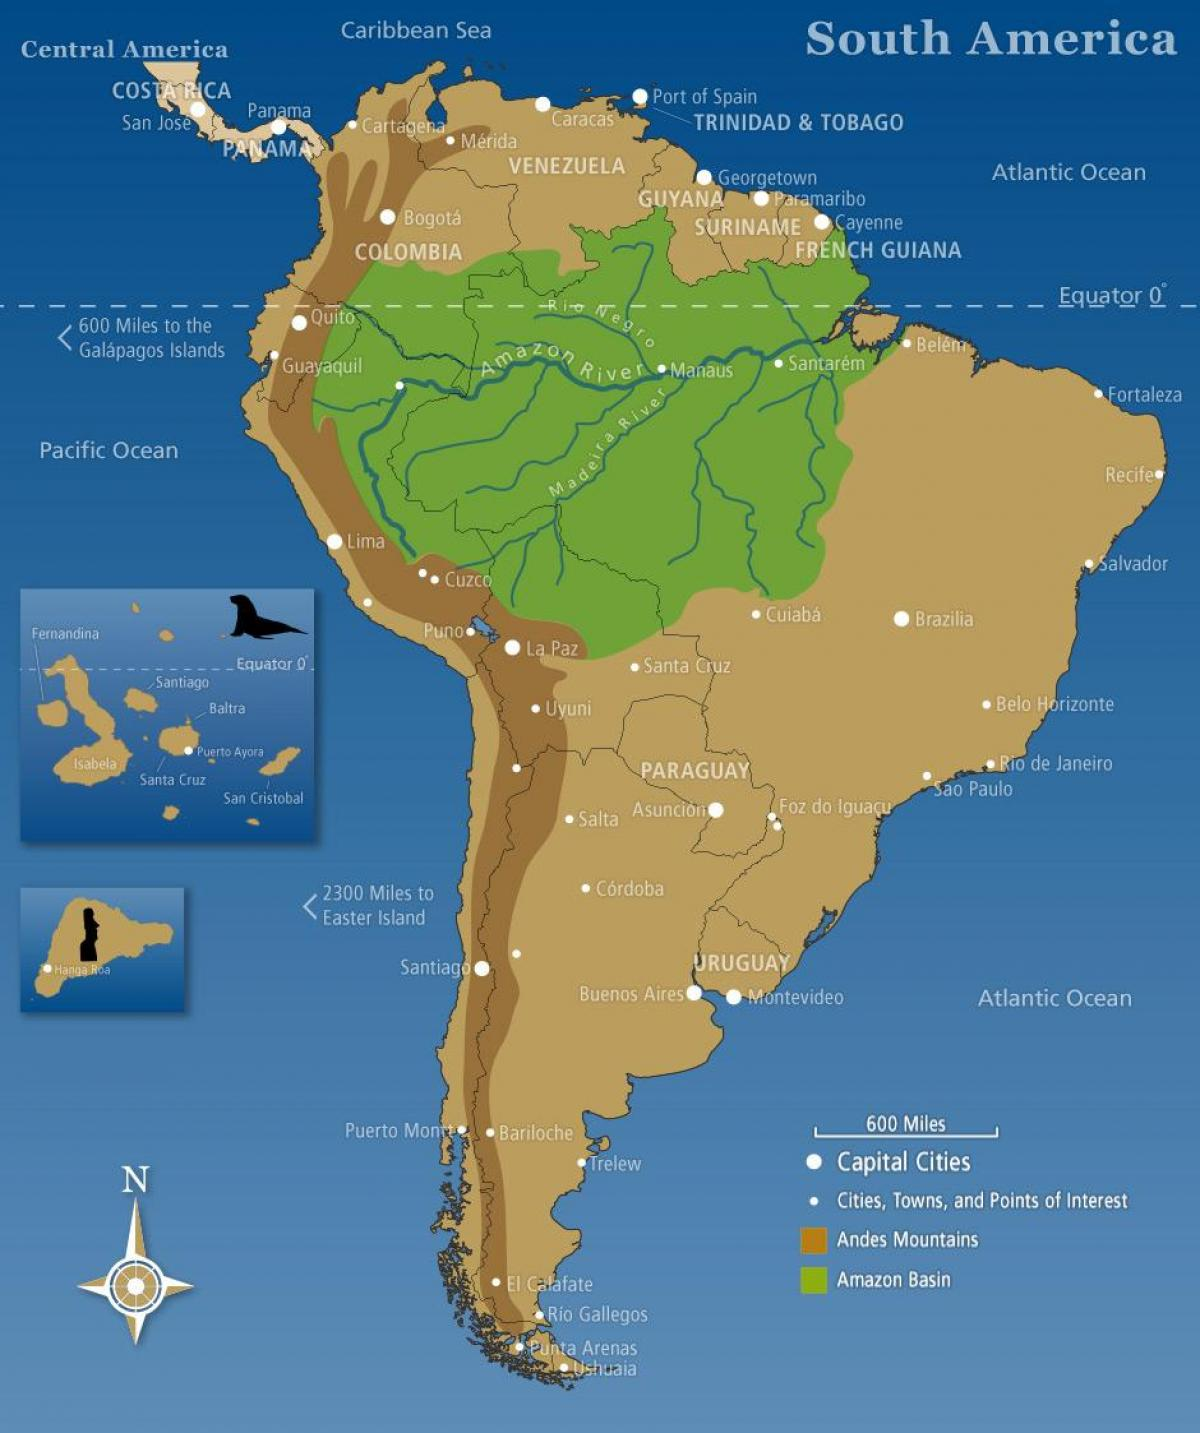 Chile andes mountains map - Map of Chile andes mountains ...